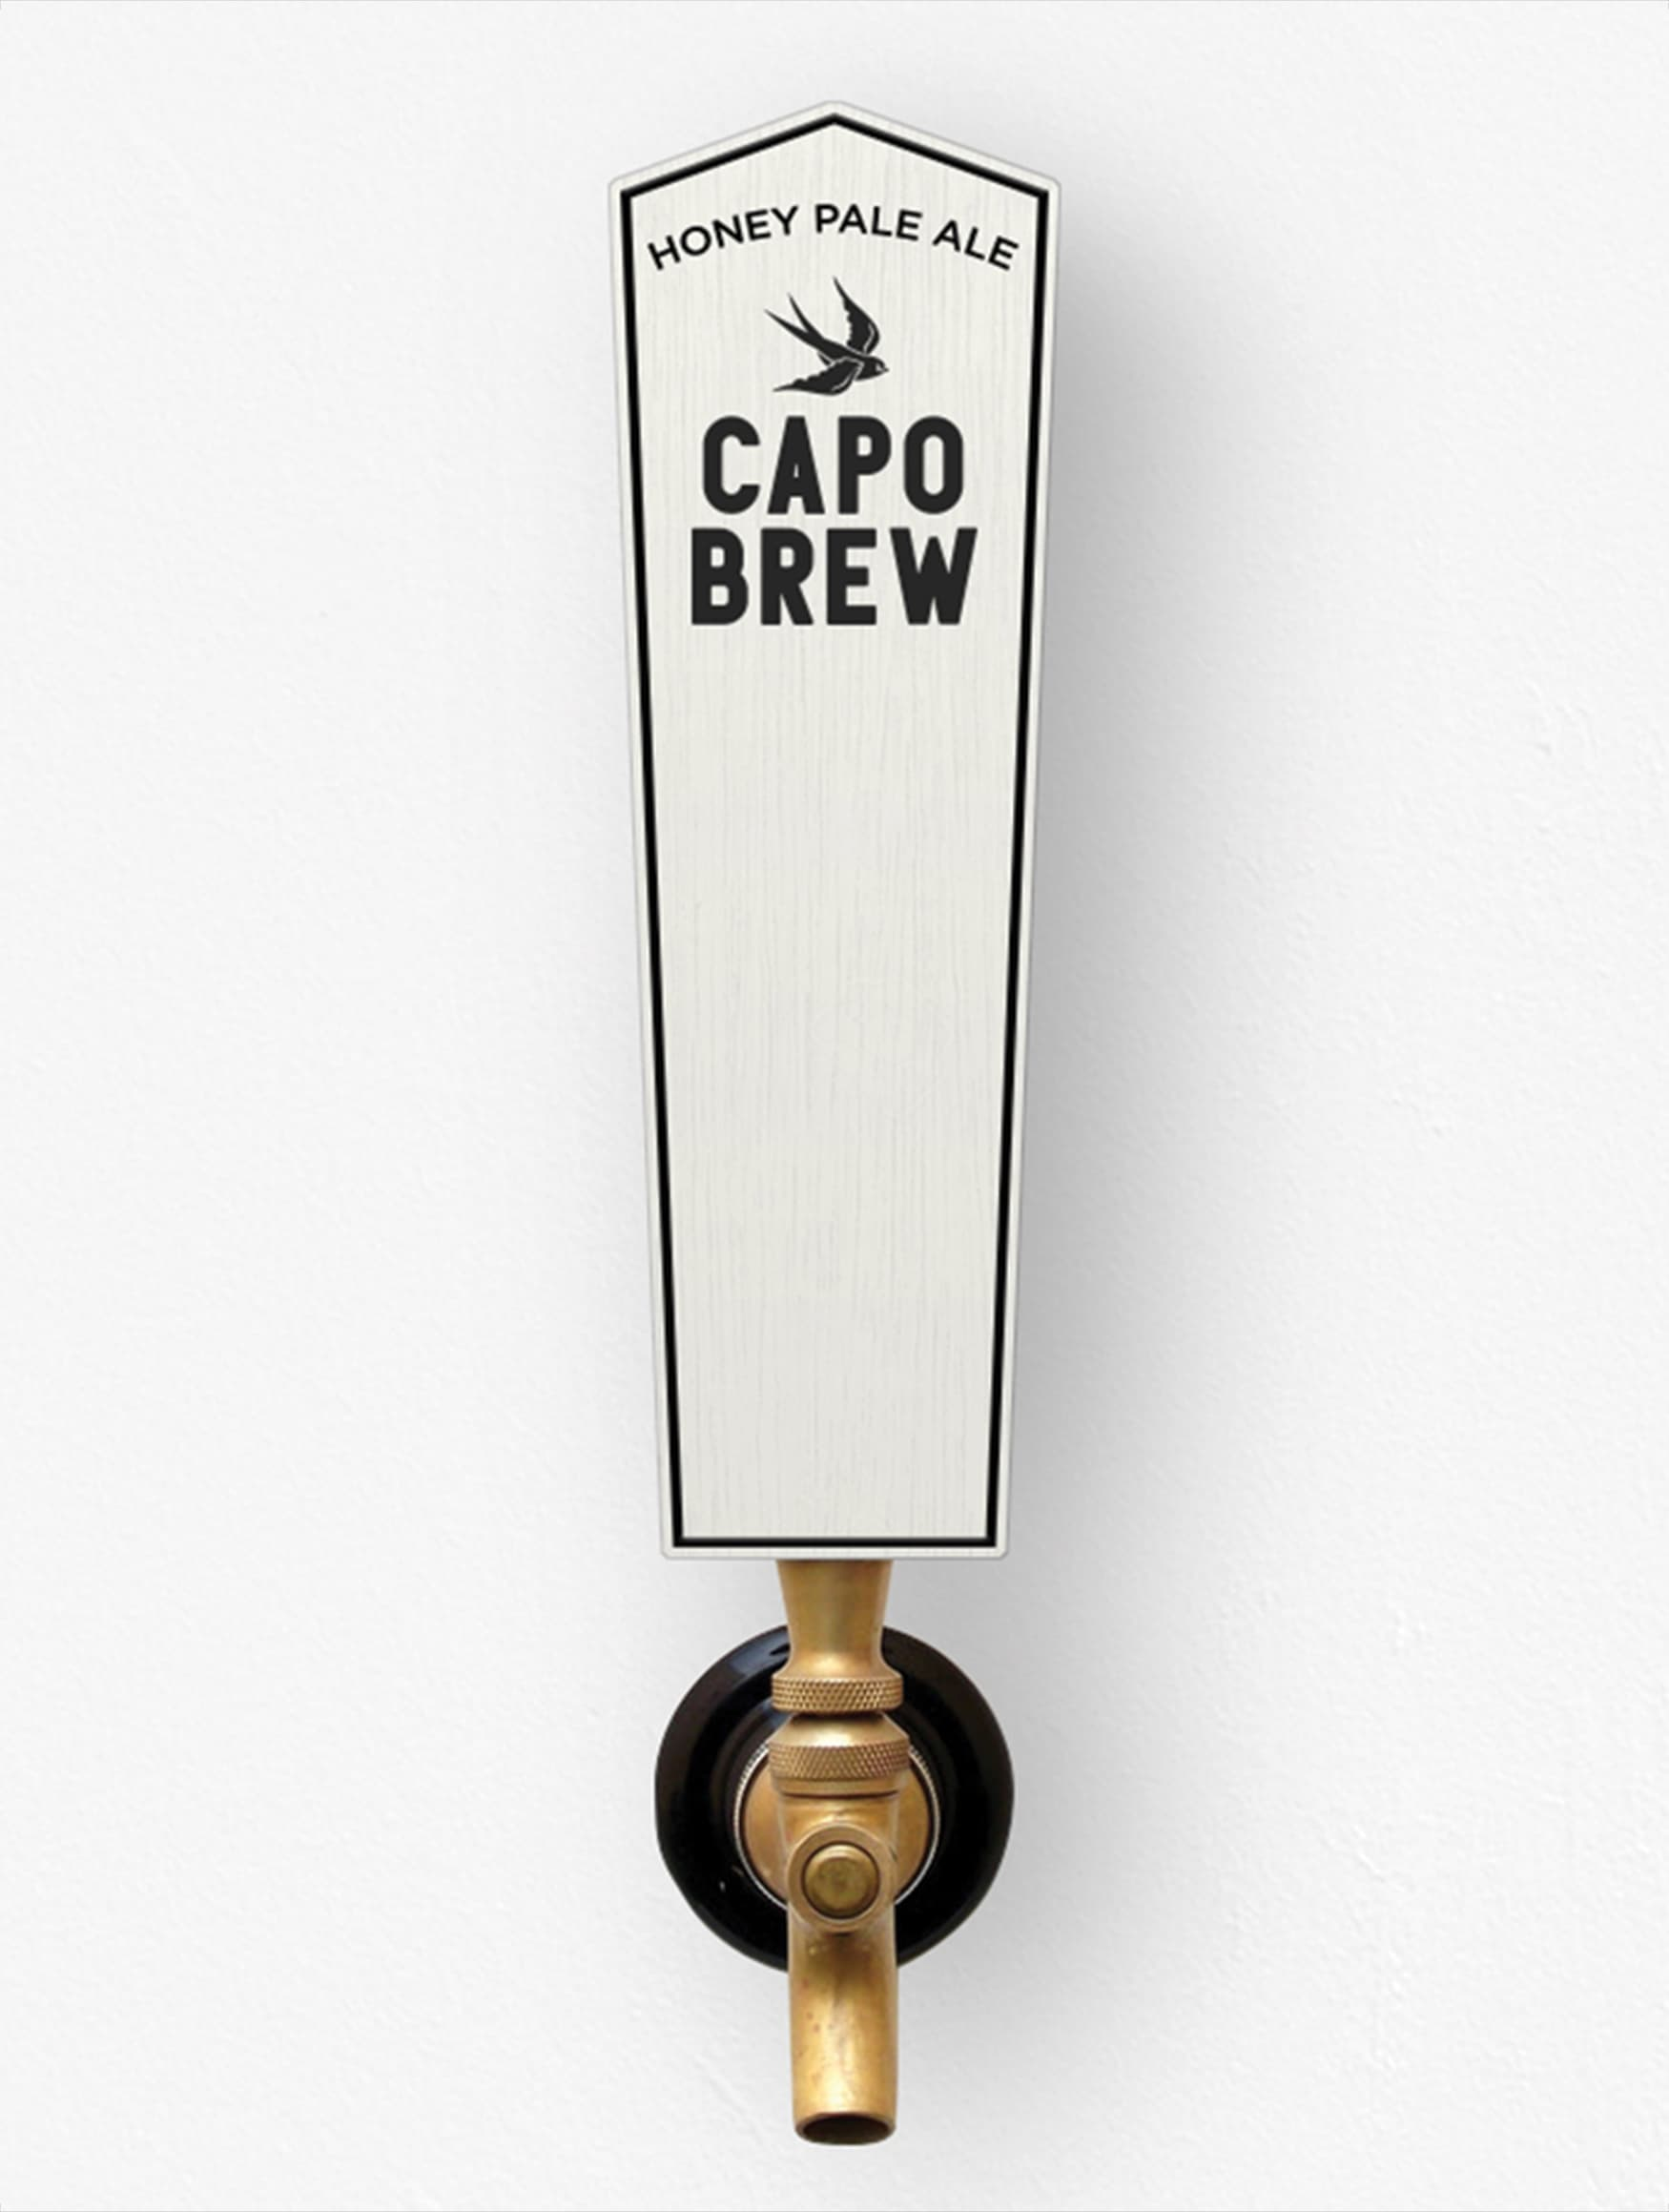 Capo Brew, a brewery located in the historic San Juan Capistrano, California, worked with RSM Design to craft a brand identity that conveyed its historic roots and cowboy personality. Branded beer tap design.